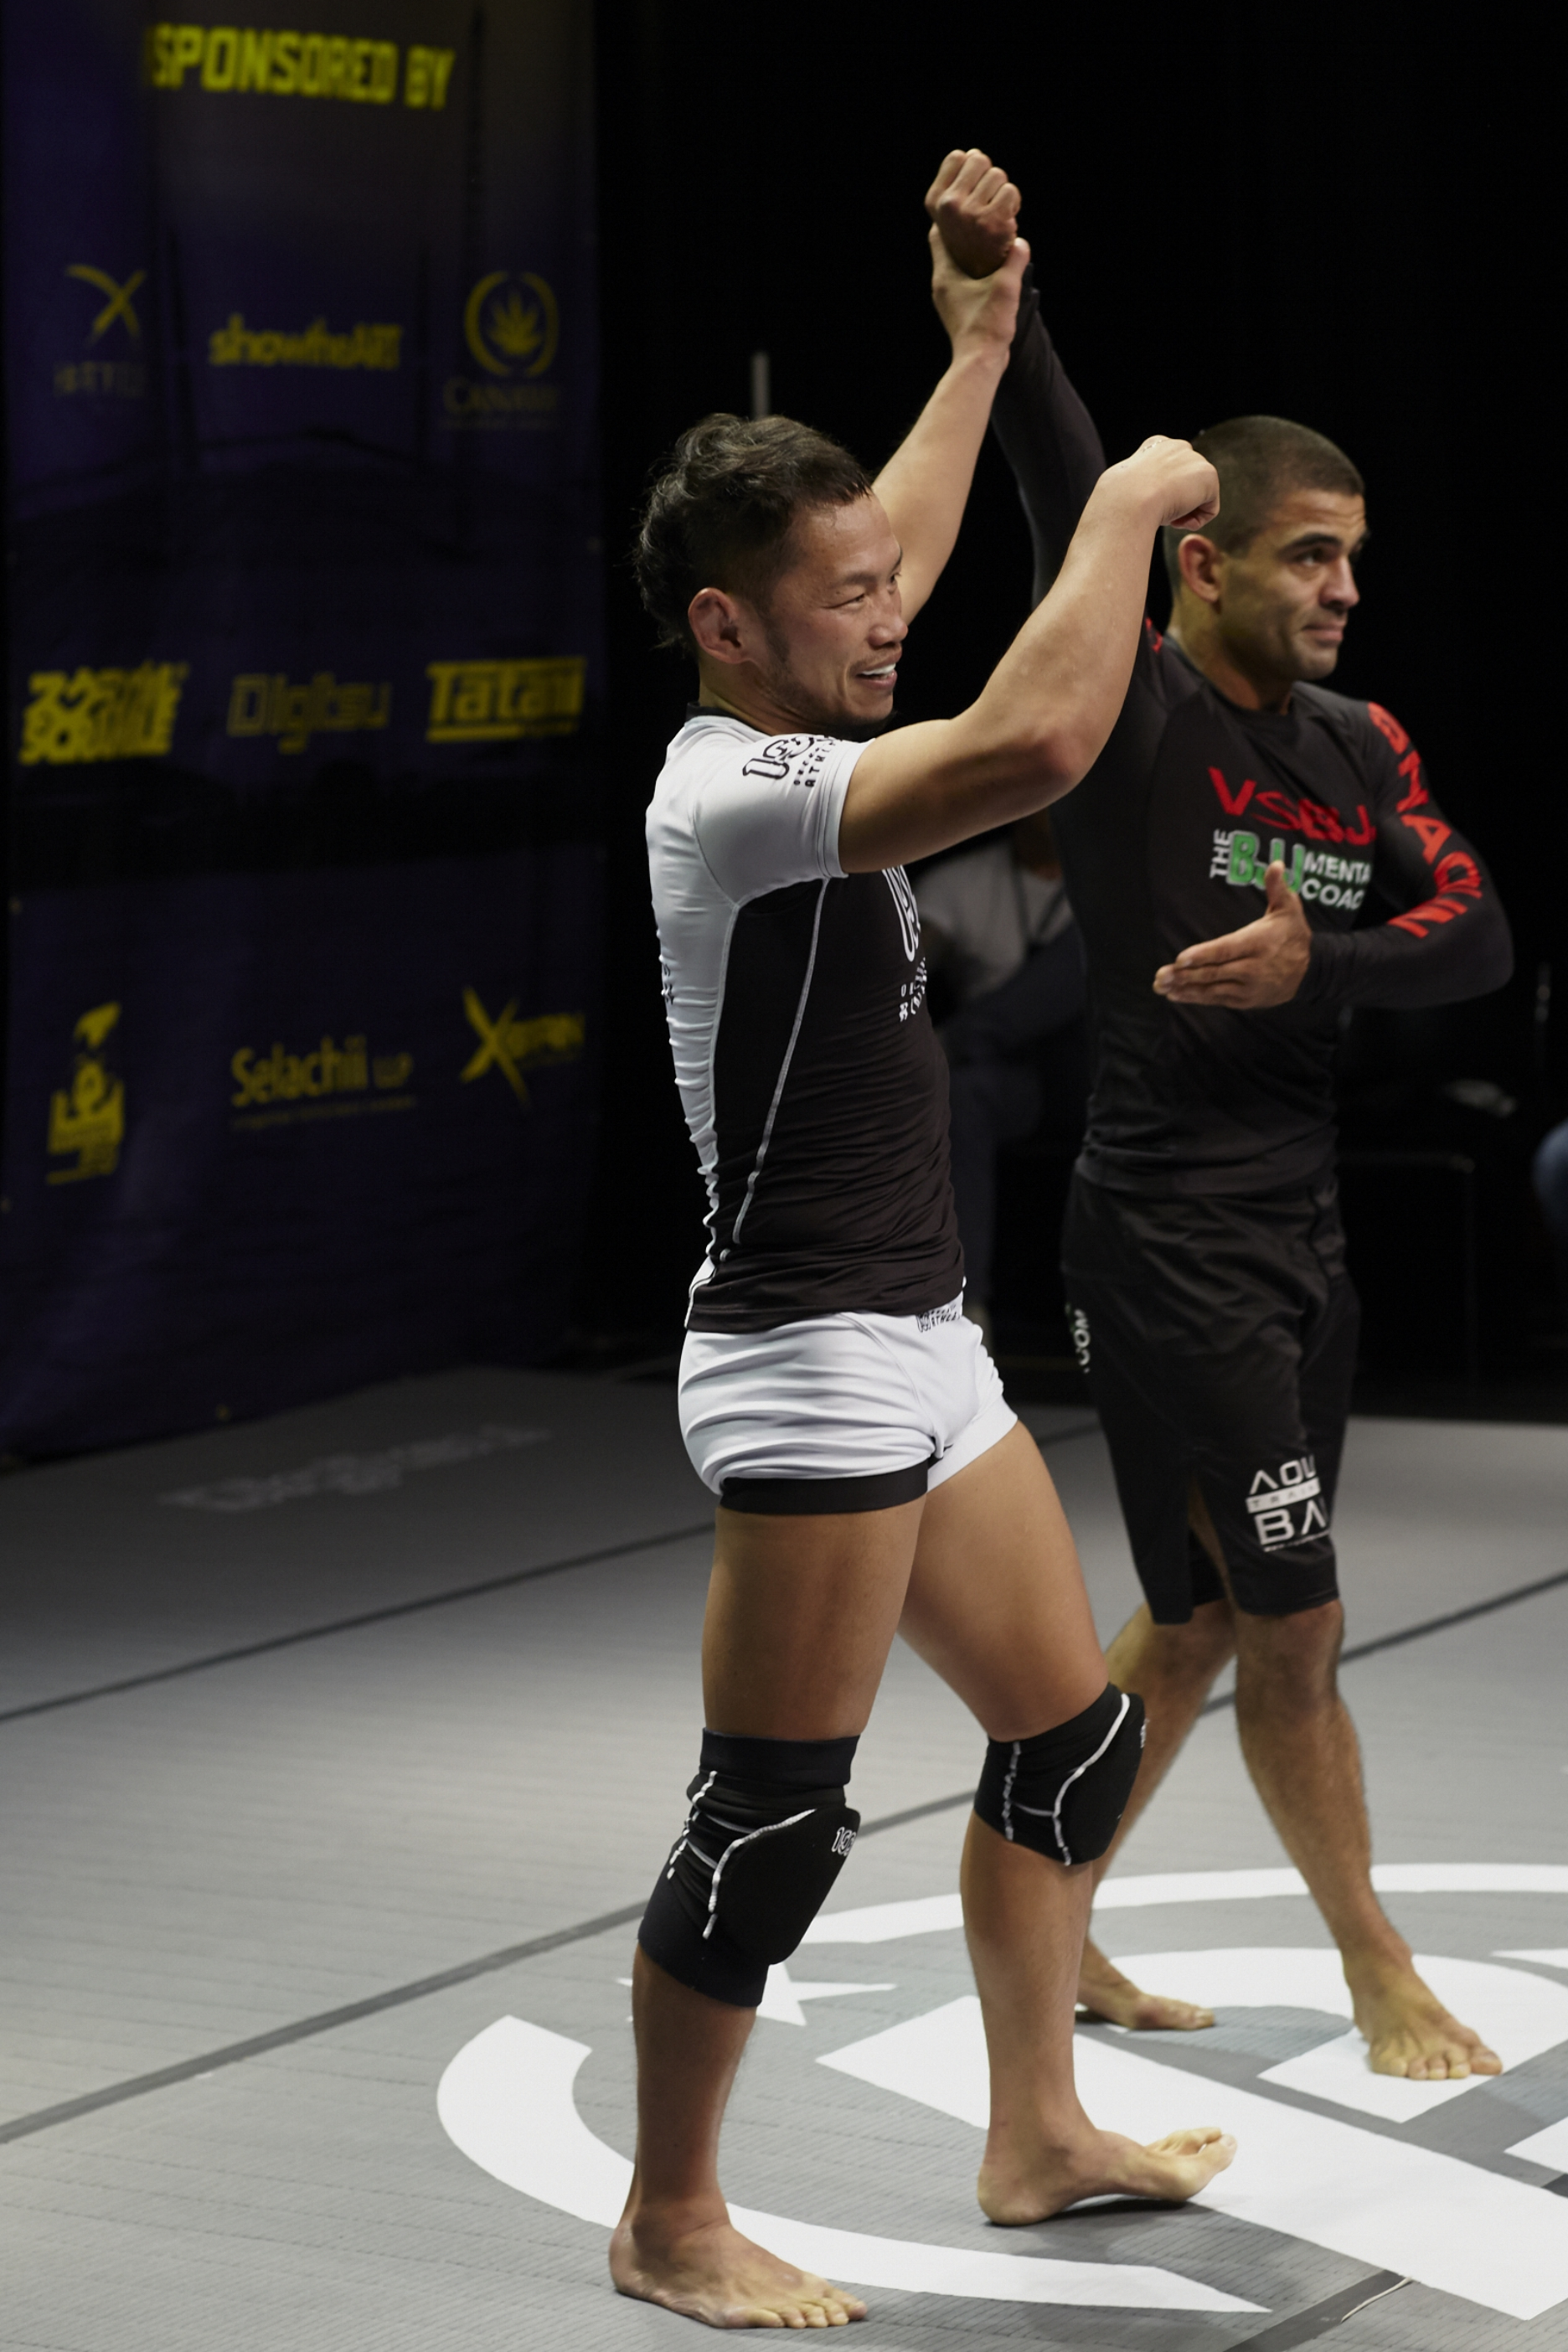 Uno recovered quickly to raise Ribeiro's hand; a tough guy and a sportsman. Photo by Andrew Jackson.